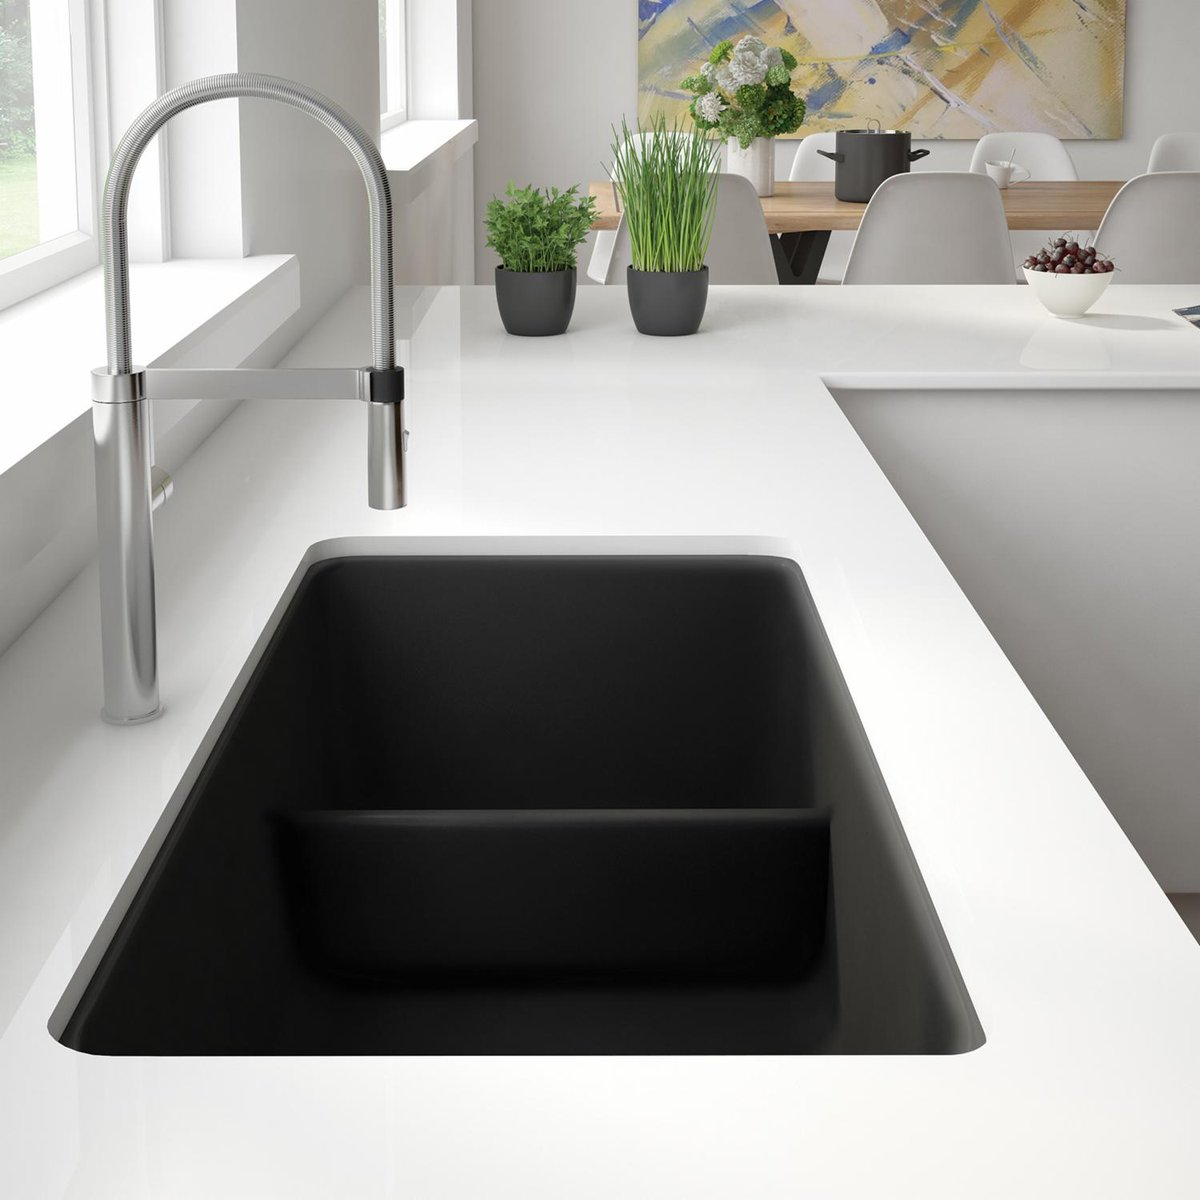 Blog Post: BLANCO Expands The PRECIS #SILGRANIT #kitchen #sink Collection  With Two New Essential Sizes   The PRECIS 30u201d Single Bowl And PRECIS 1 3/4  Bowl ...